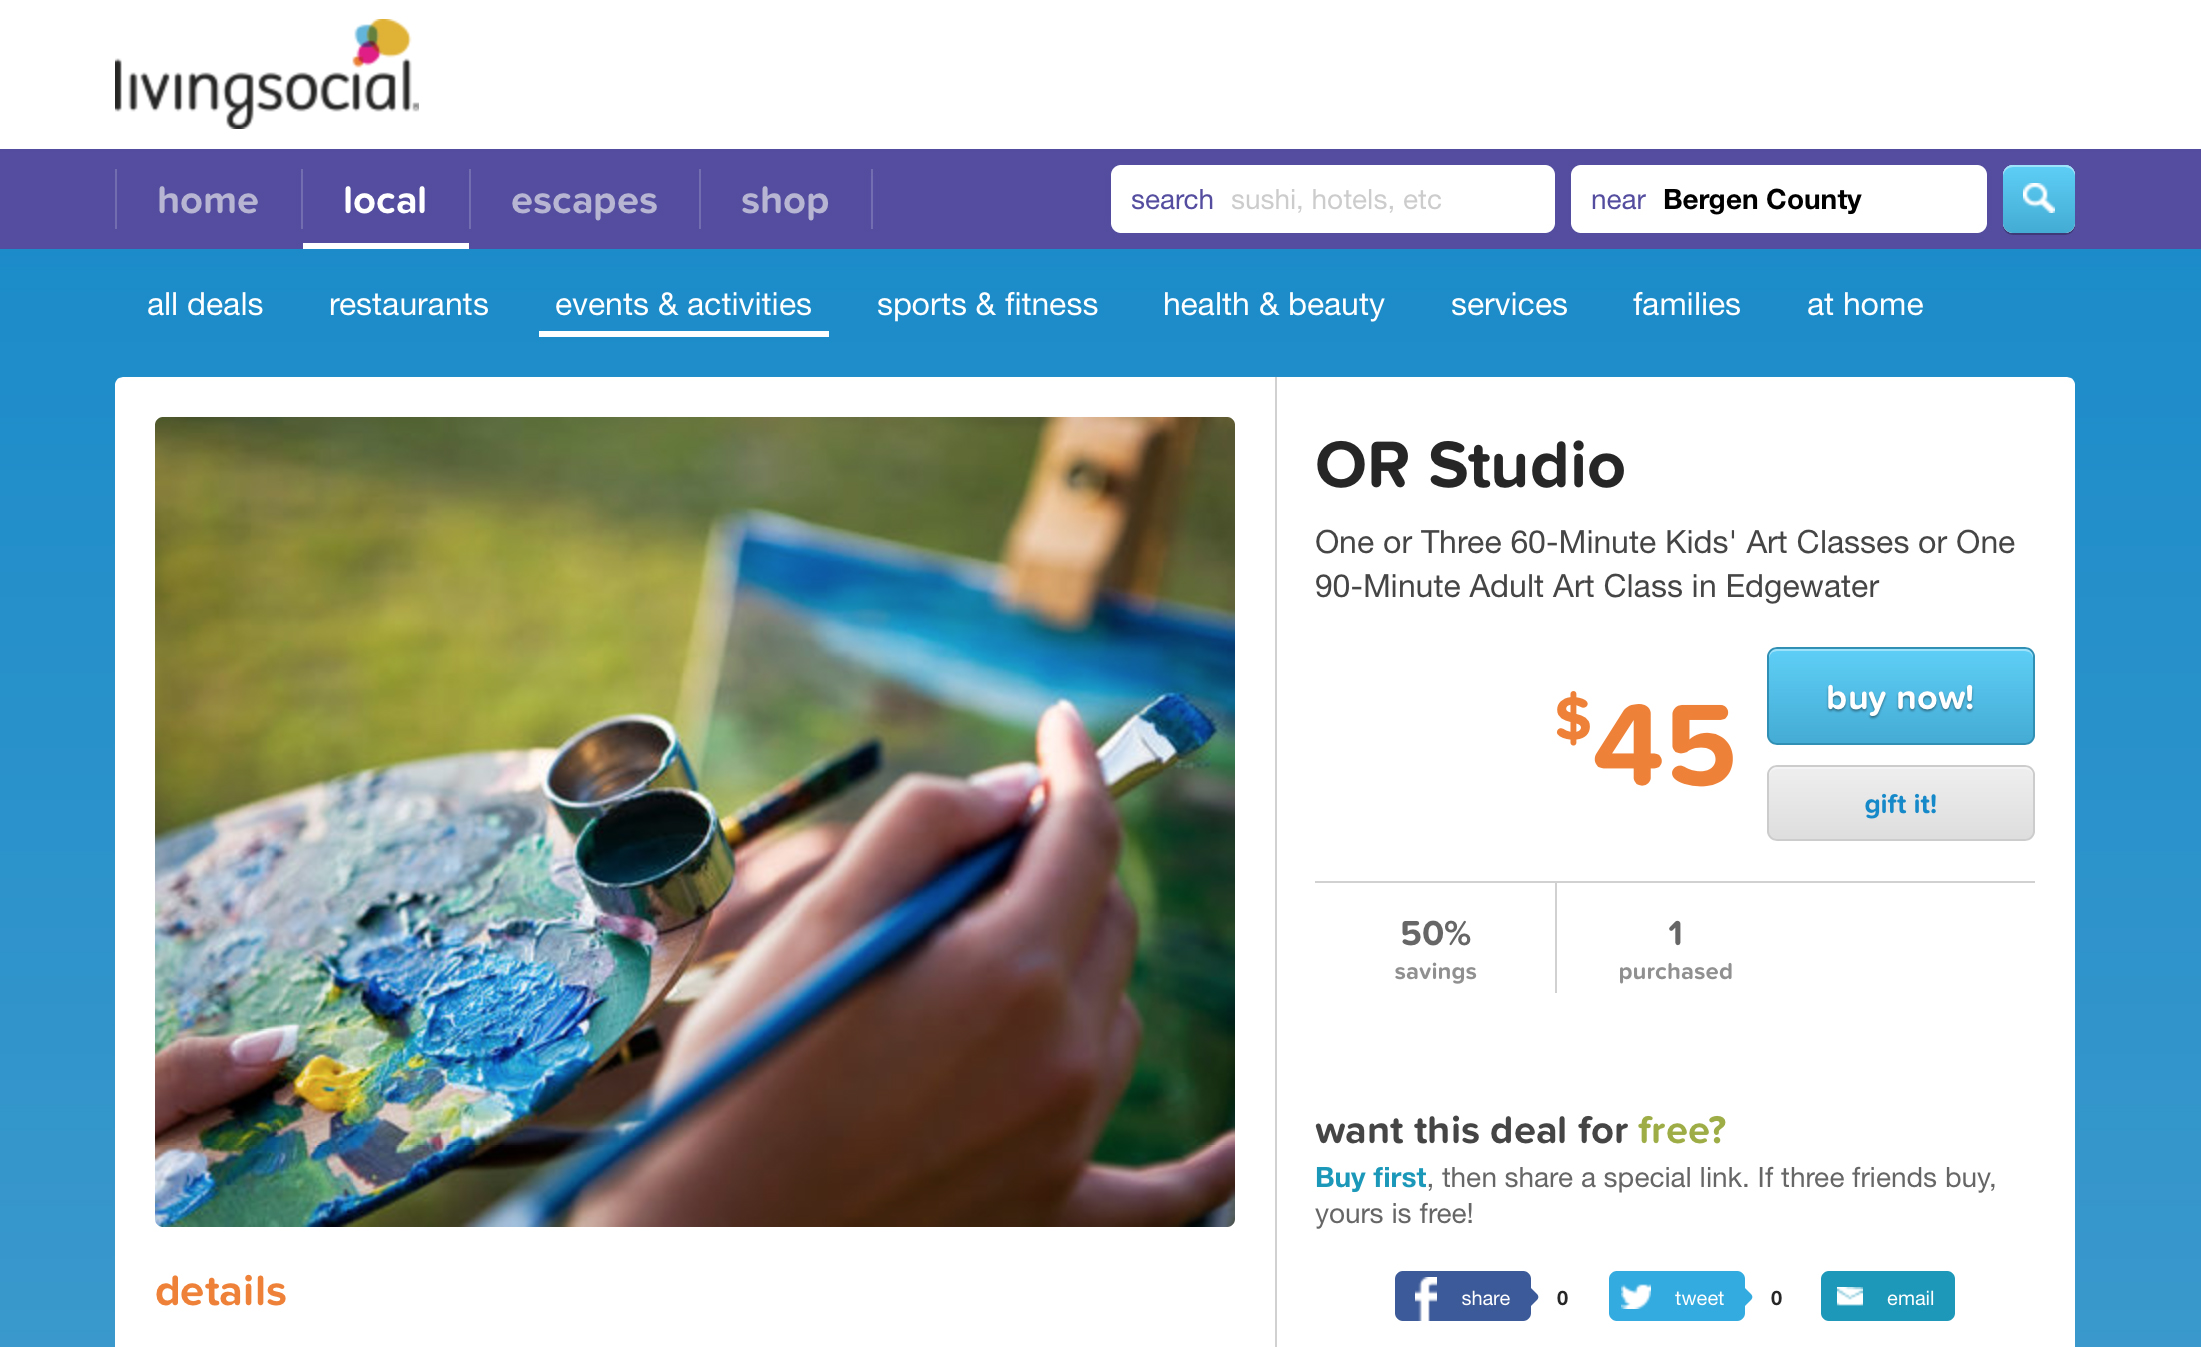 OR Studio on LivingSocial